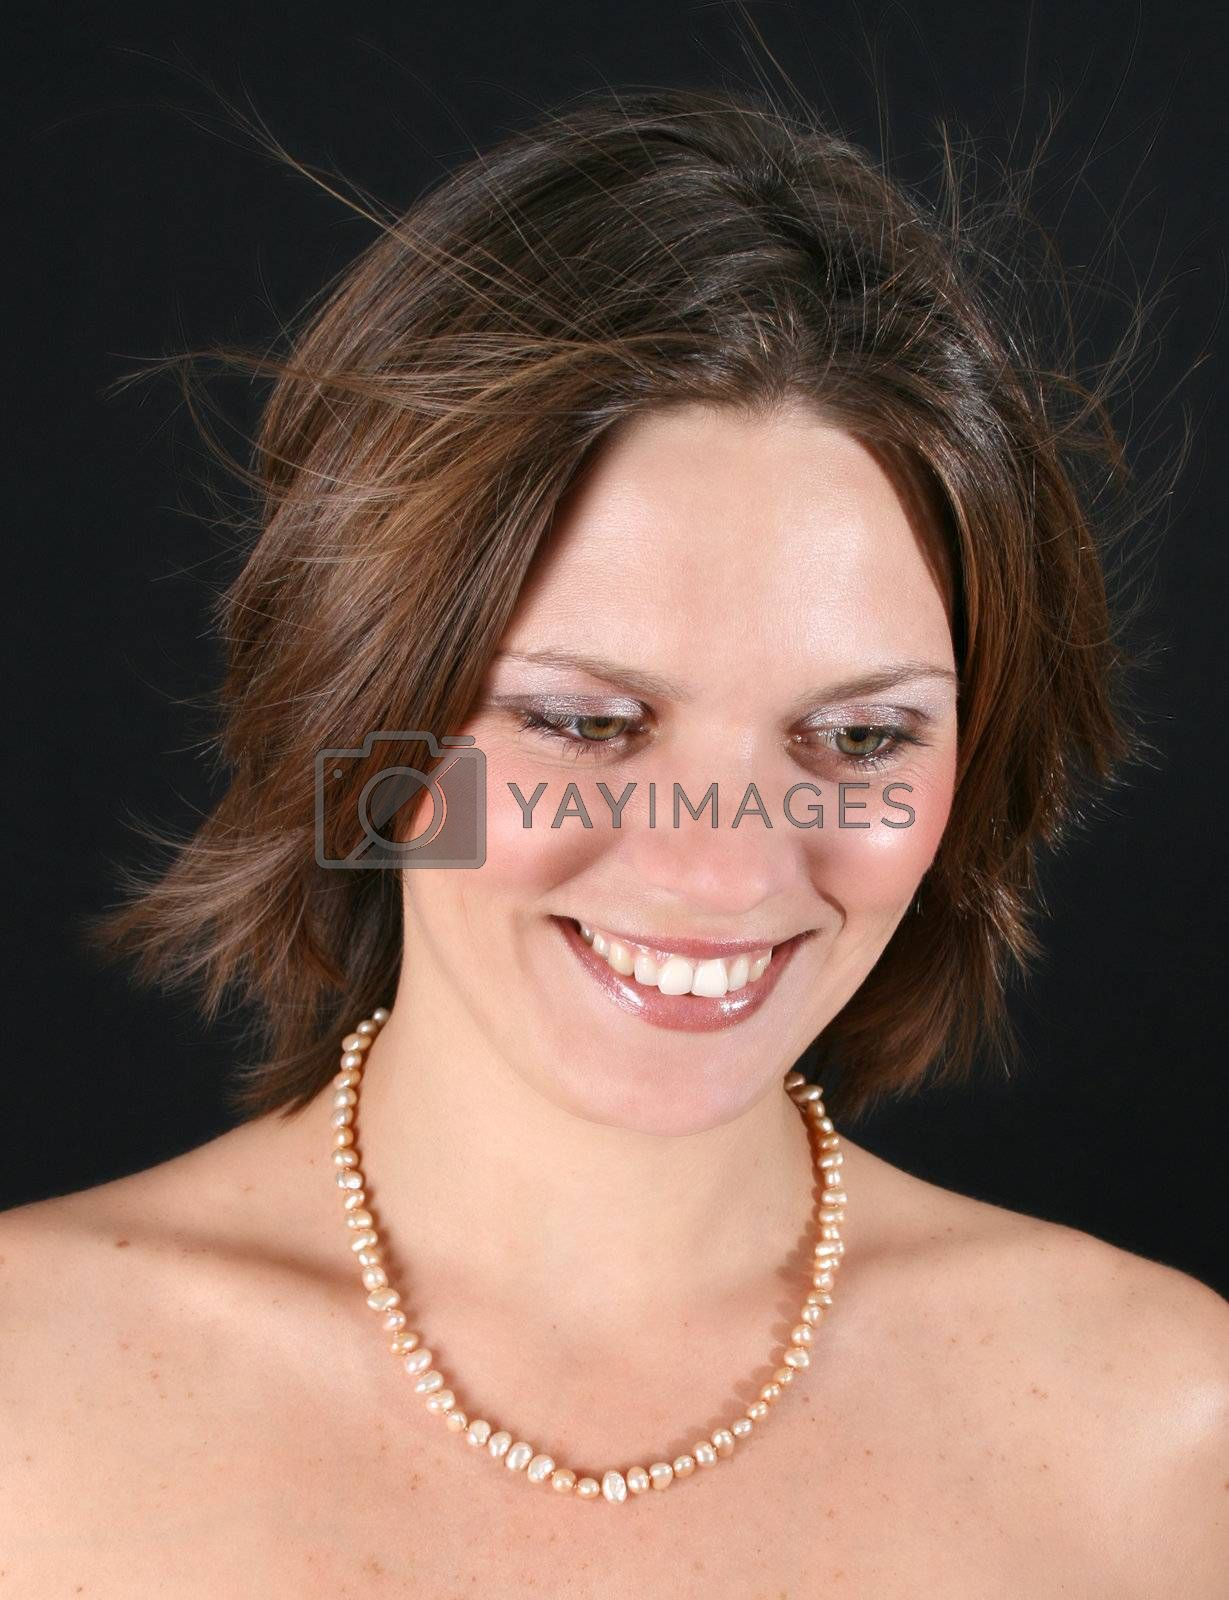 Beautiful young woman with bare shoulders and pearls